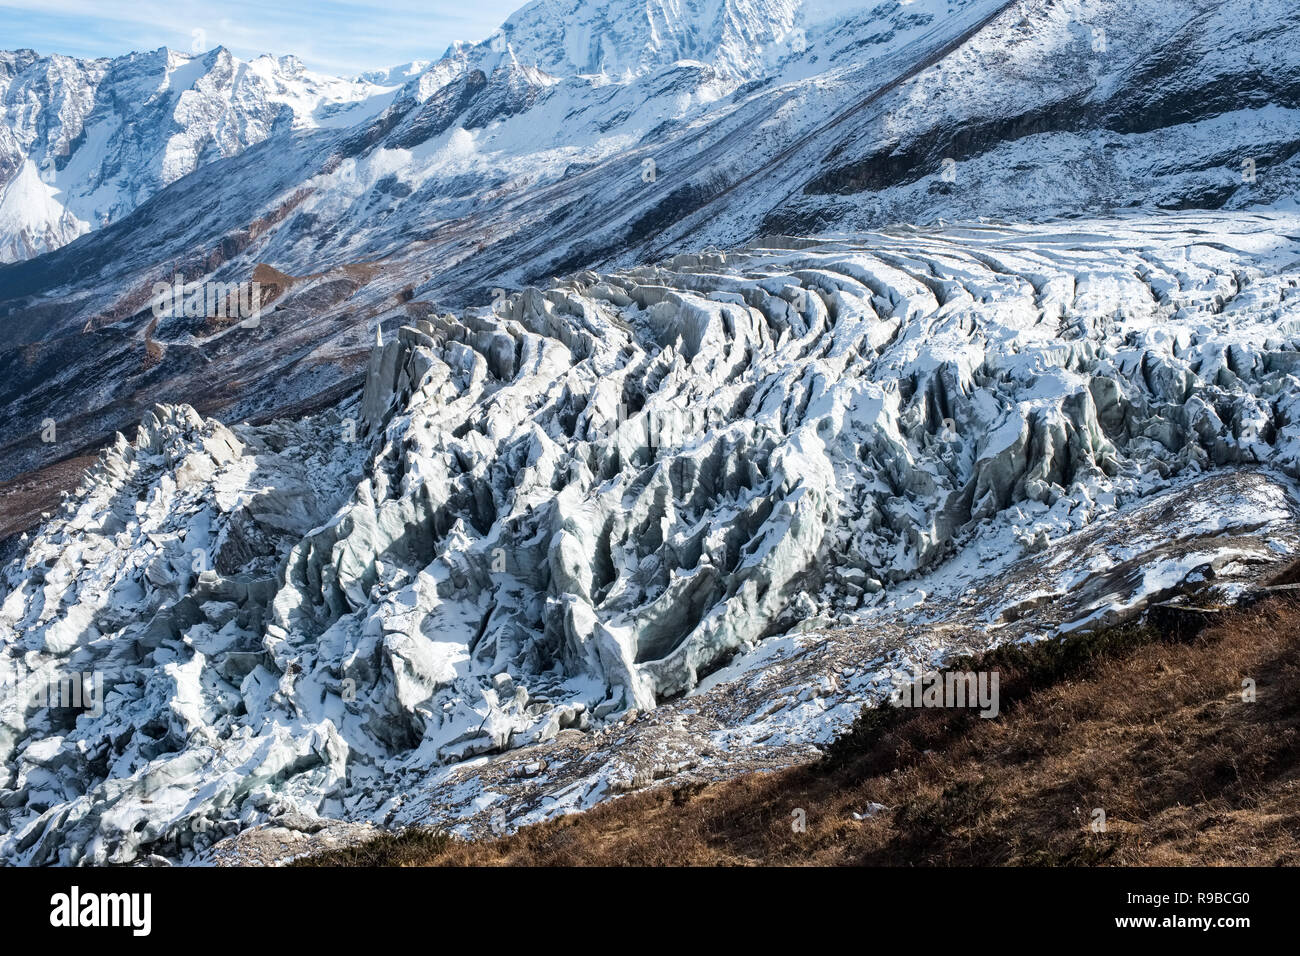 Seracs and crevasses on the glacier coming down from Manaslu in the Nepal Himalayas - Stock Image